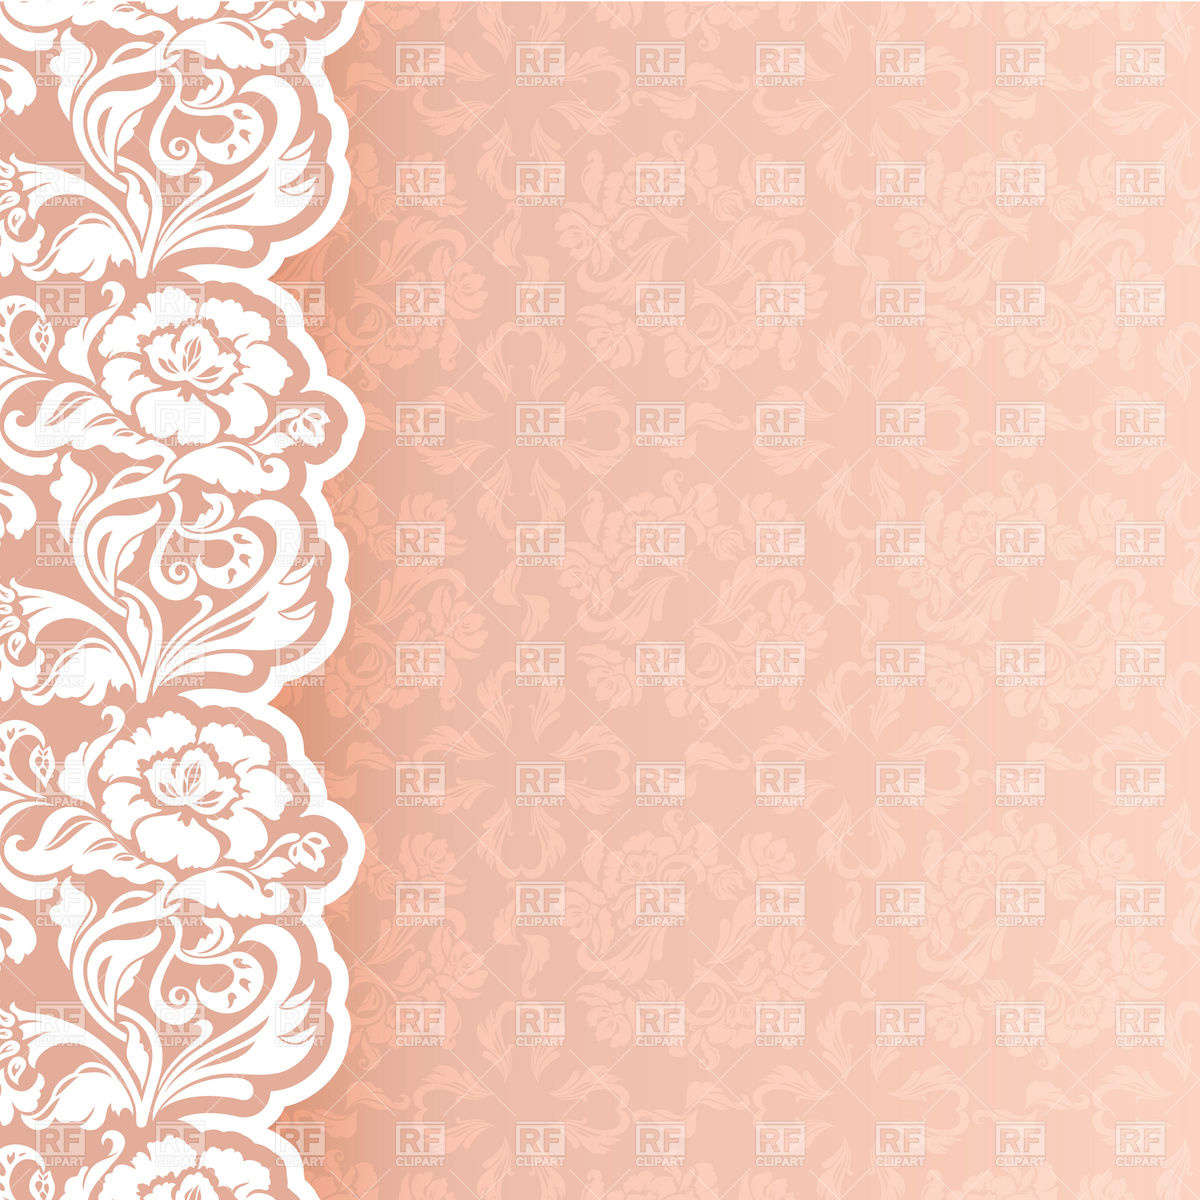 wedding invitation template download royalty free vector clipart EPS 1200x1200